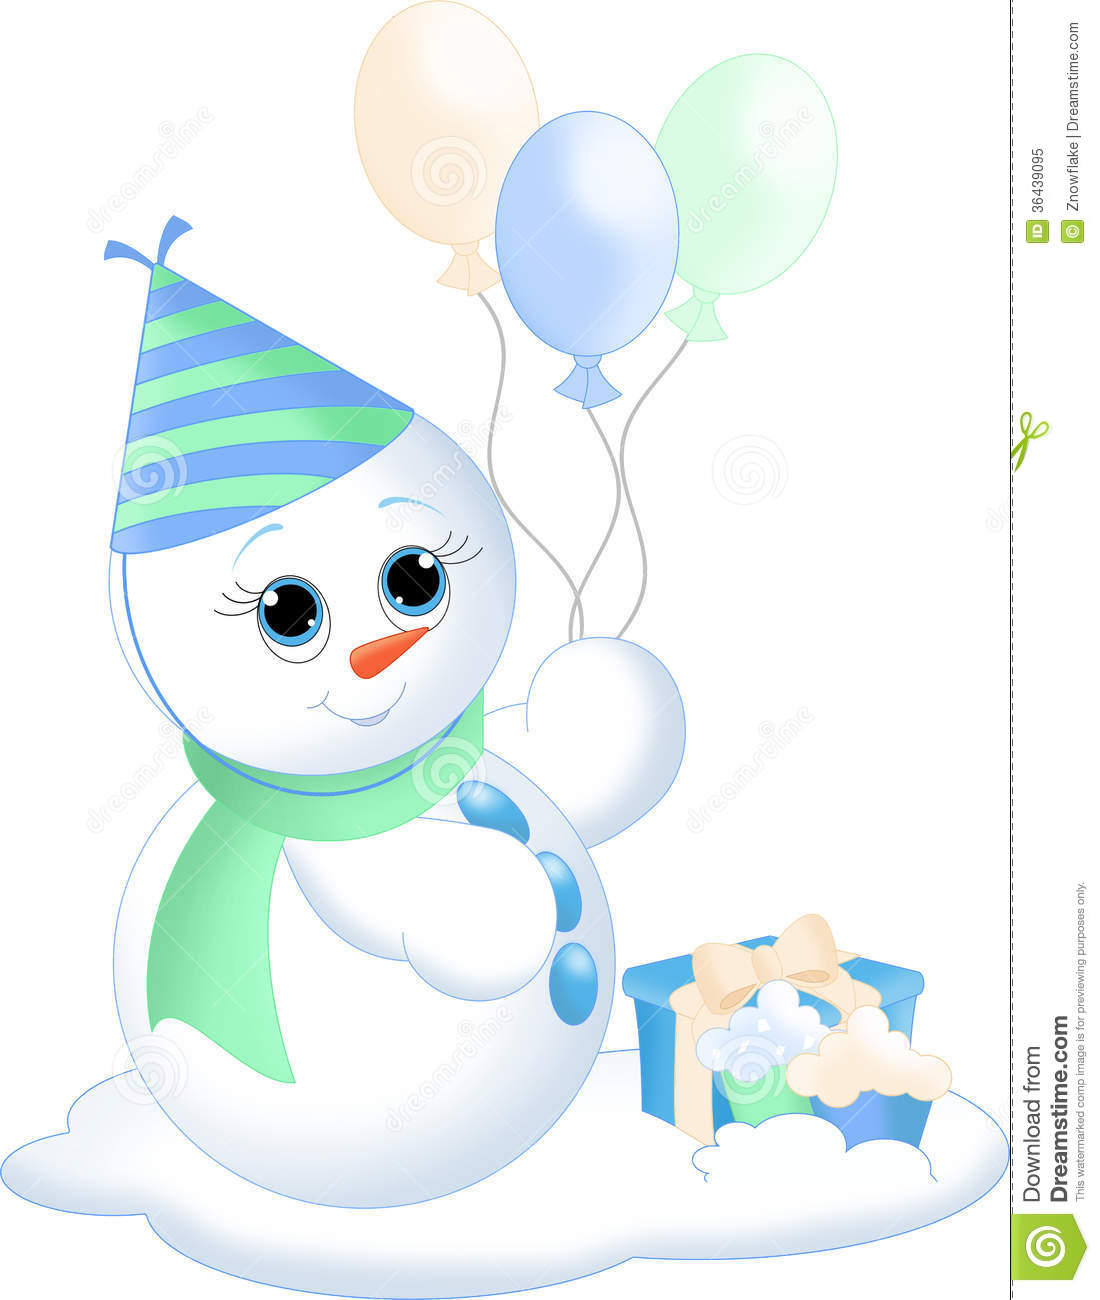 Snowman Party Royalty Free Stock Photo - Image: 36439095